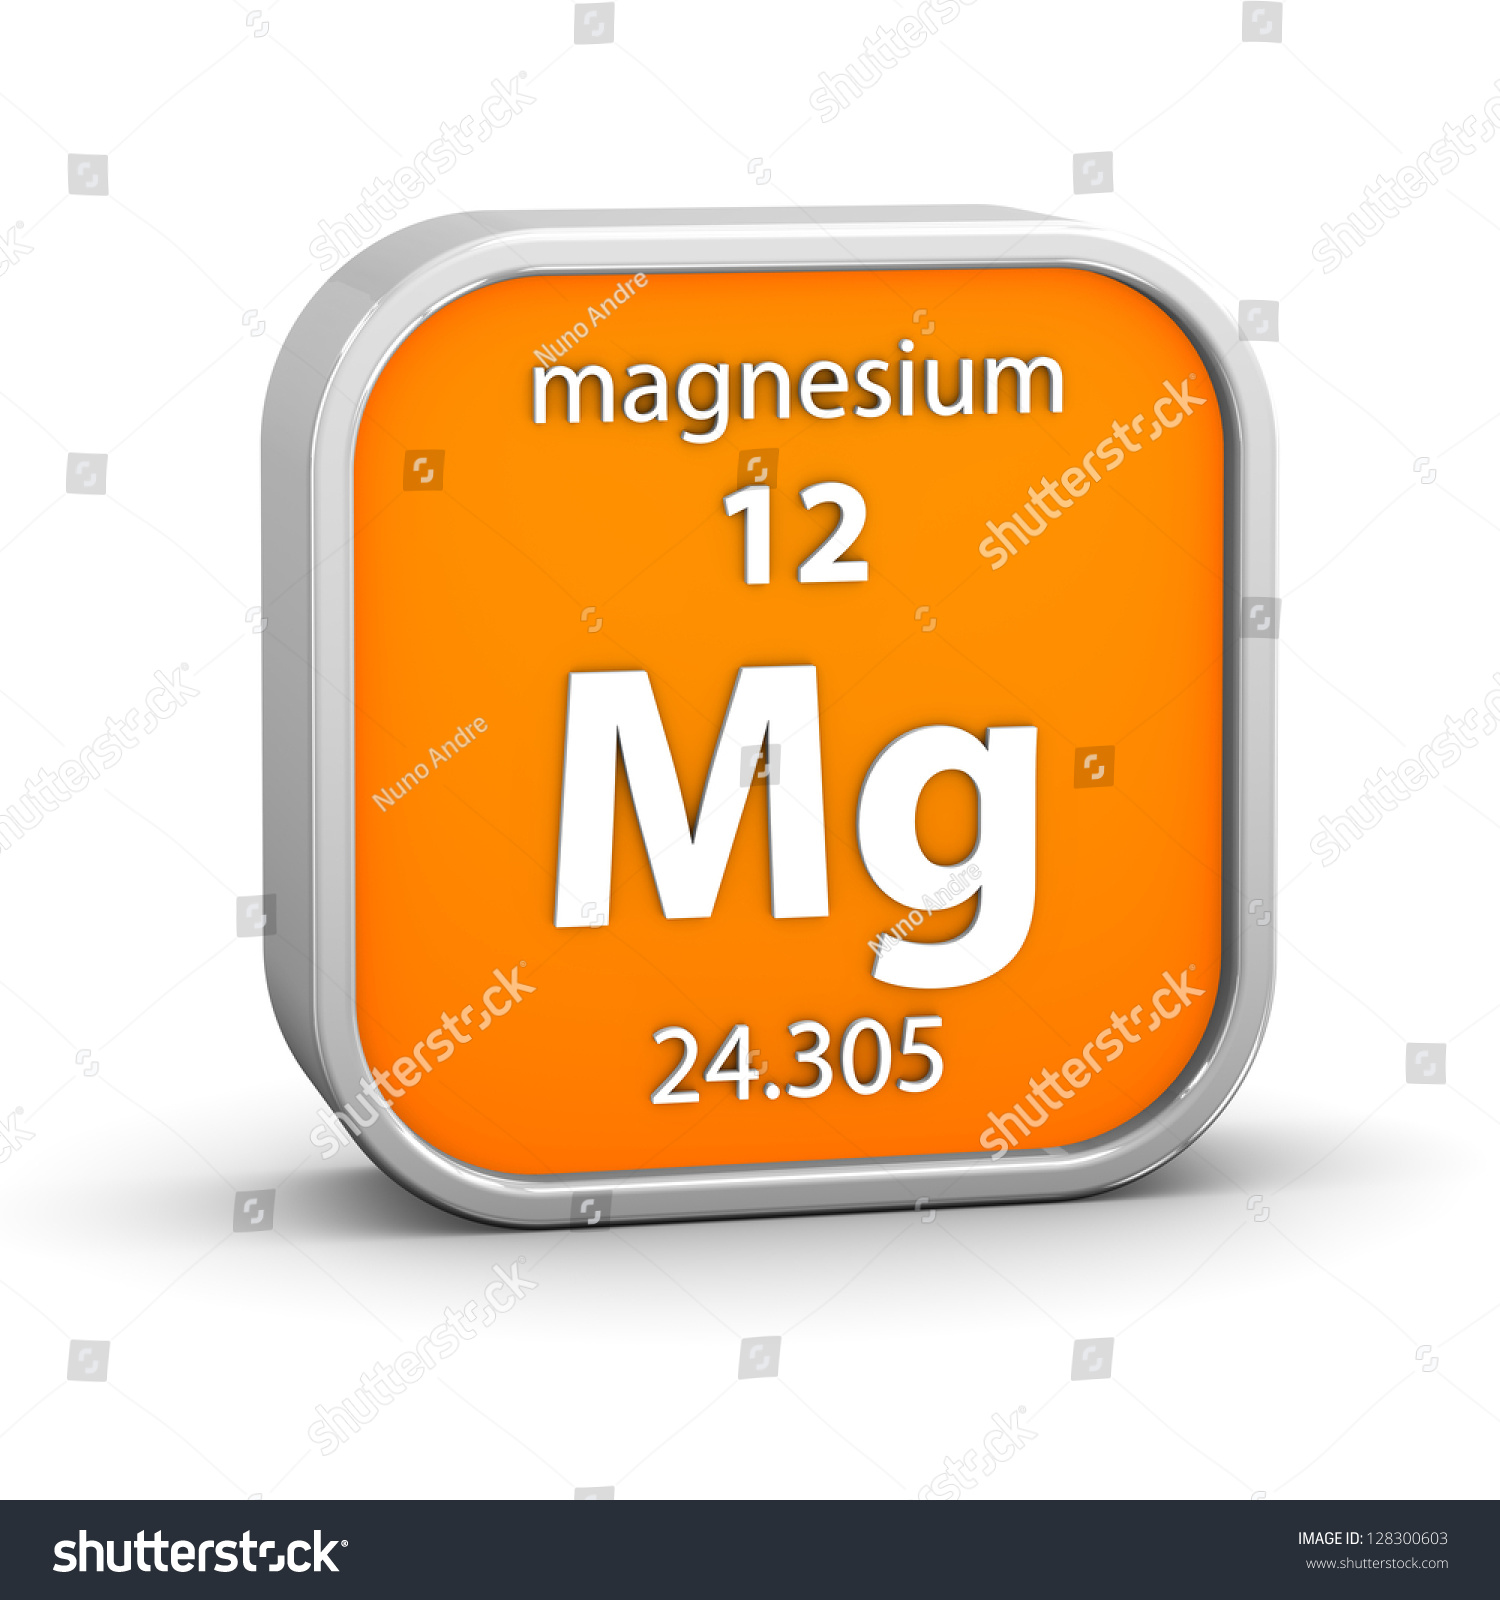 Magnesium material on periodic table part stock illustration magnesium material on the periodic table part of a series gamestrikefo Gallery